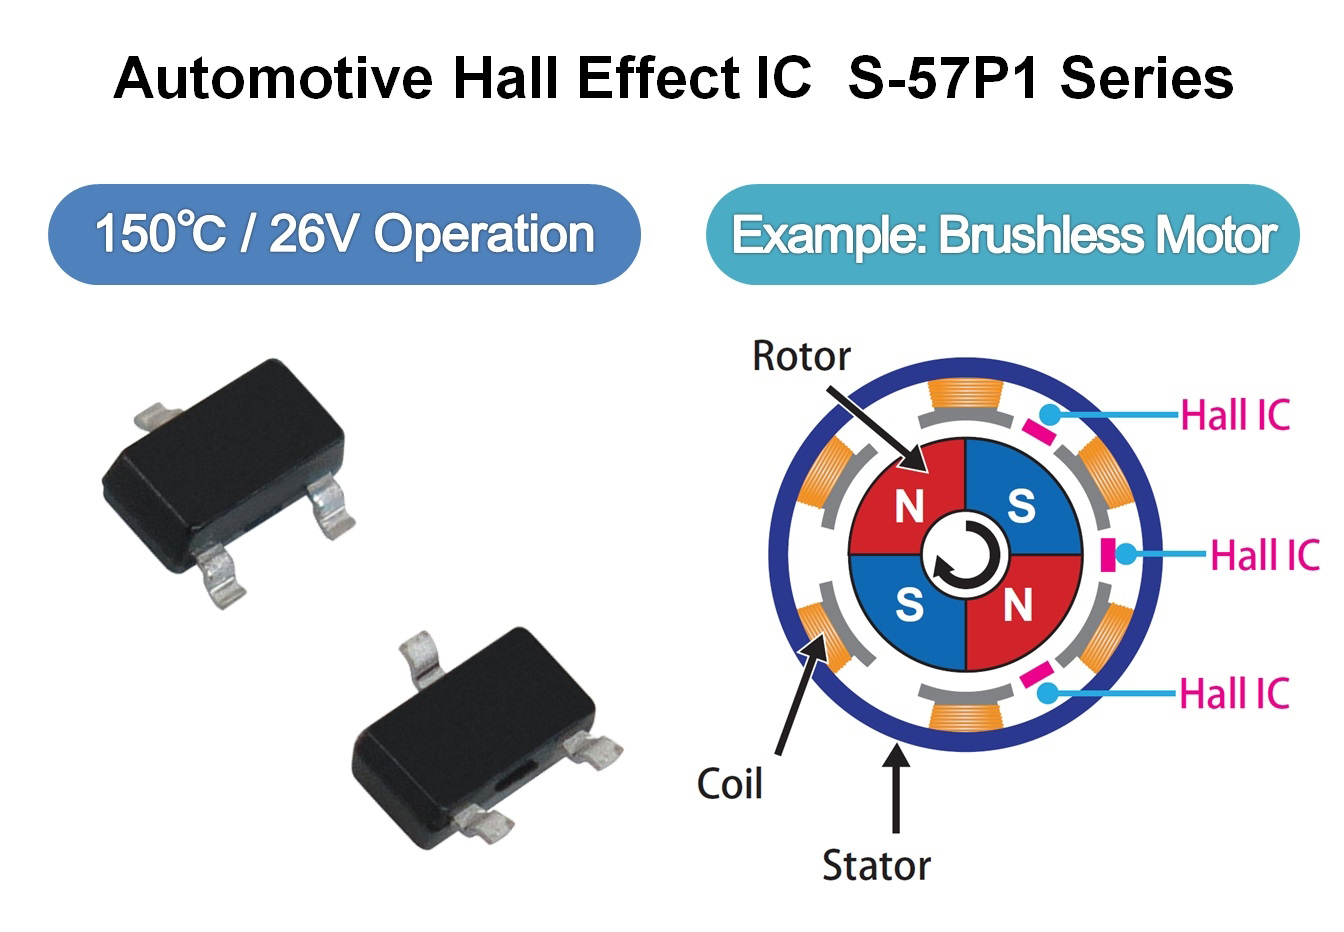 Seiko Instruments Launches New High Performance Hall Effect Sensor Full Size